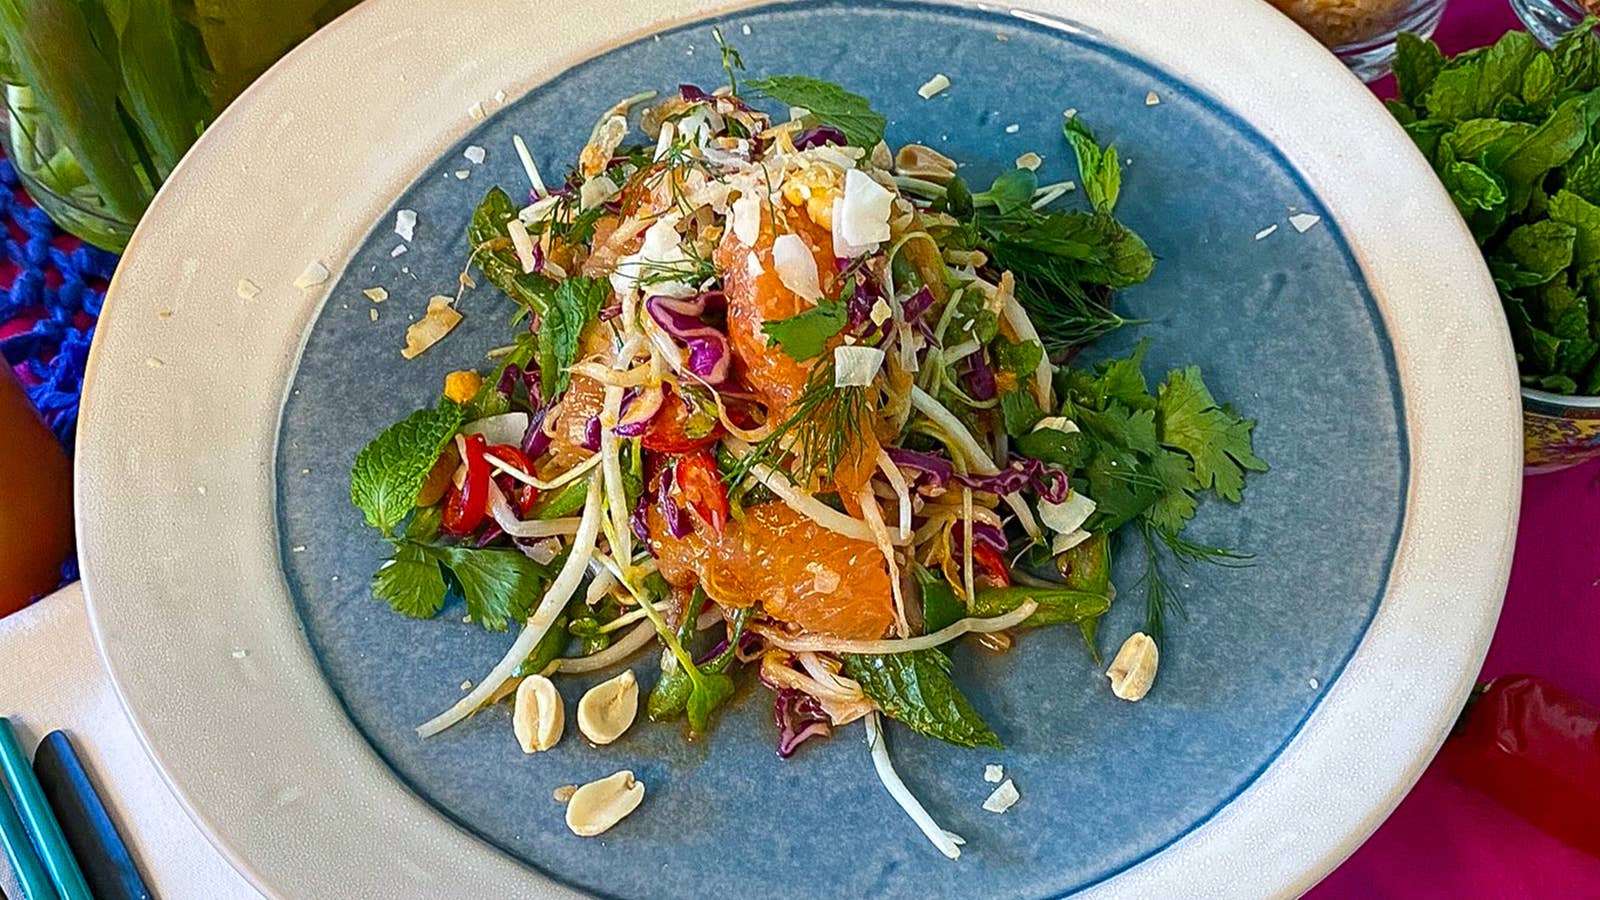 Grapefruit Salad With Thai Curried Coconut Dressing As Made By Arnold Myint